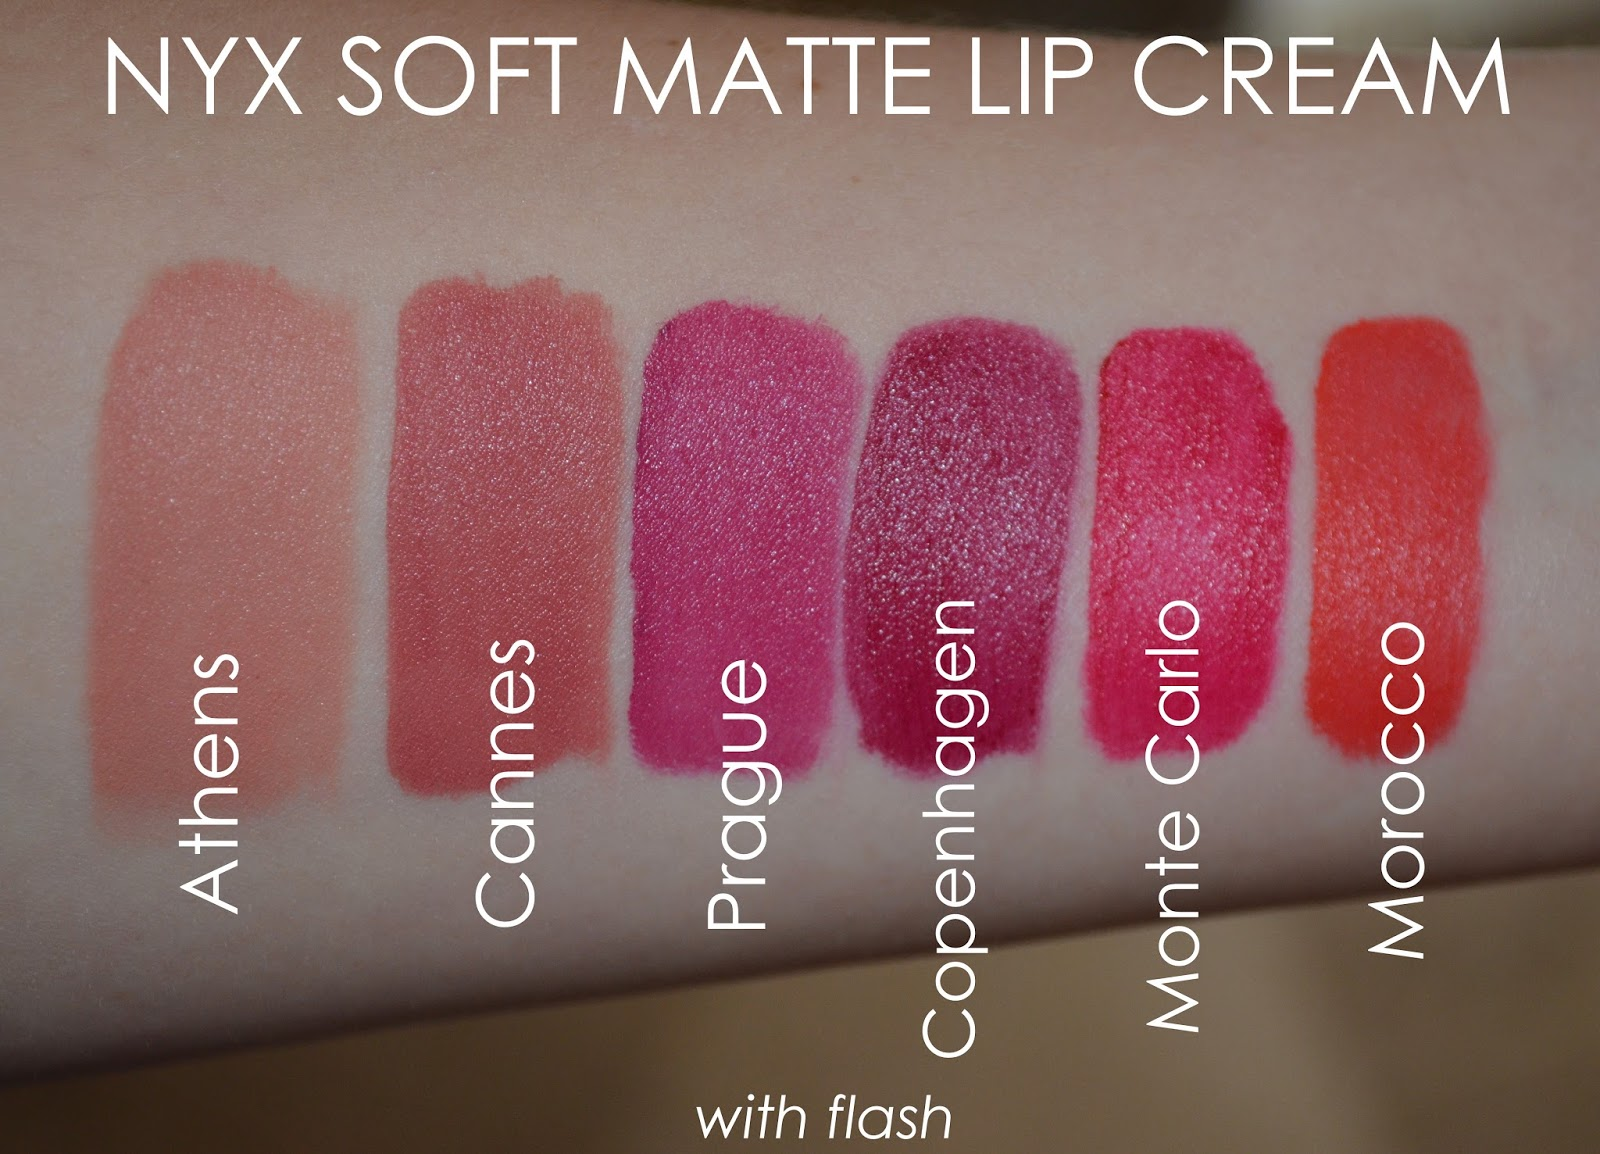 Nyx Soft Matte Lip Cream My Collection Review Swatches La